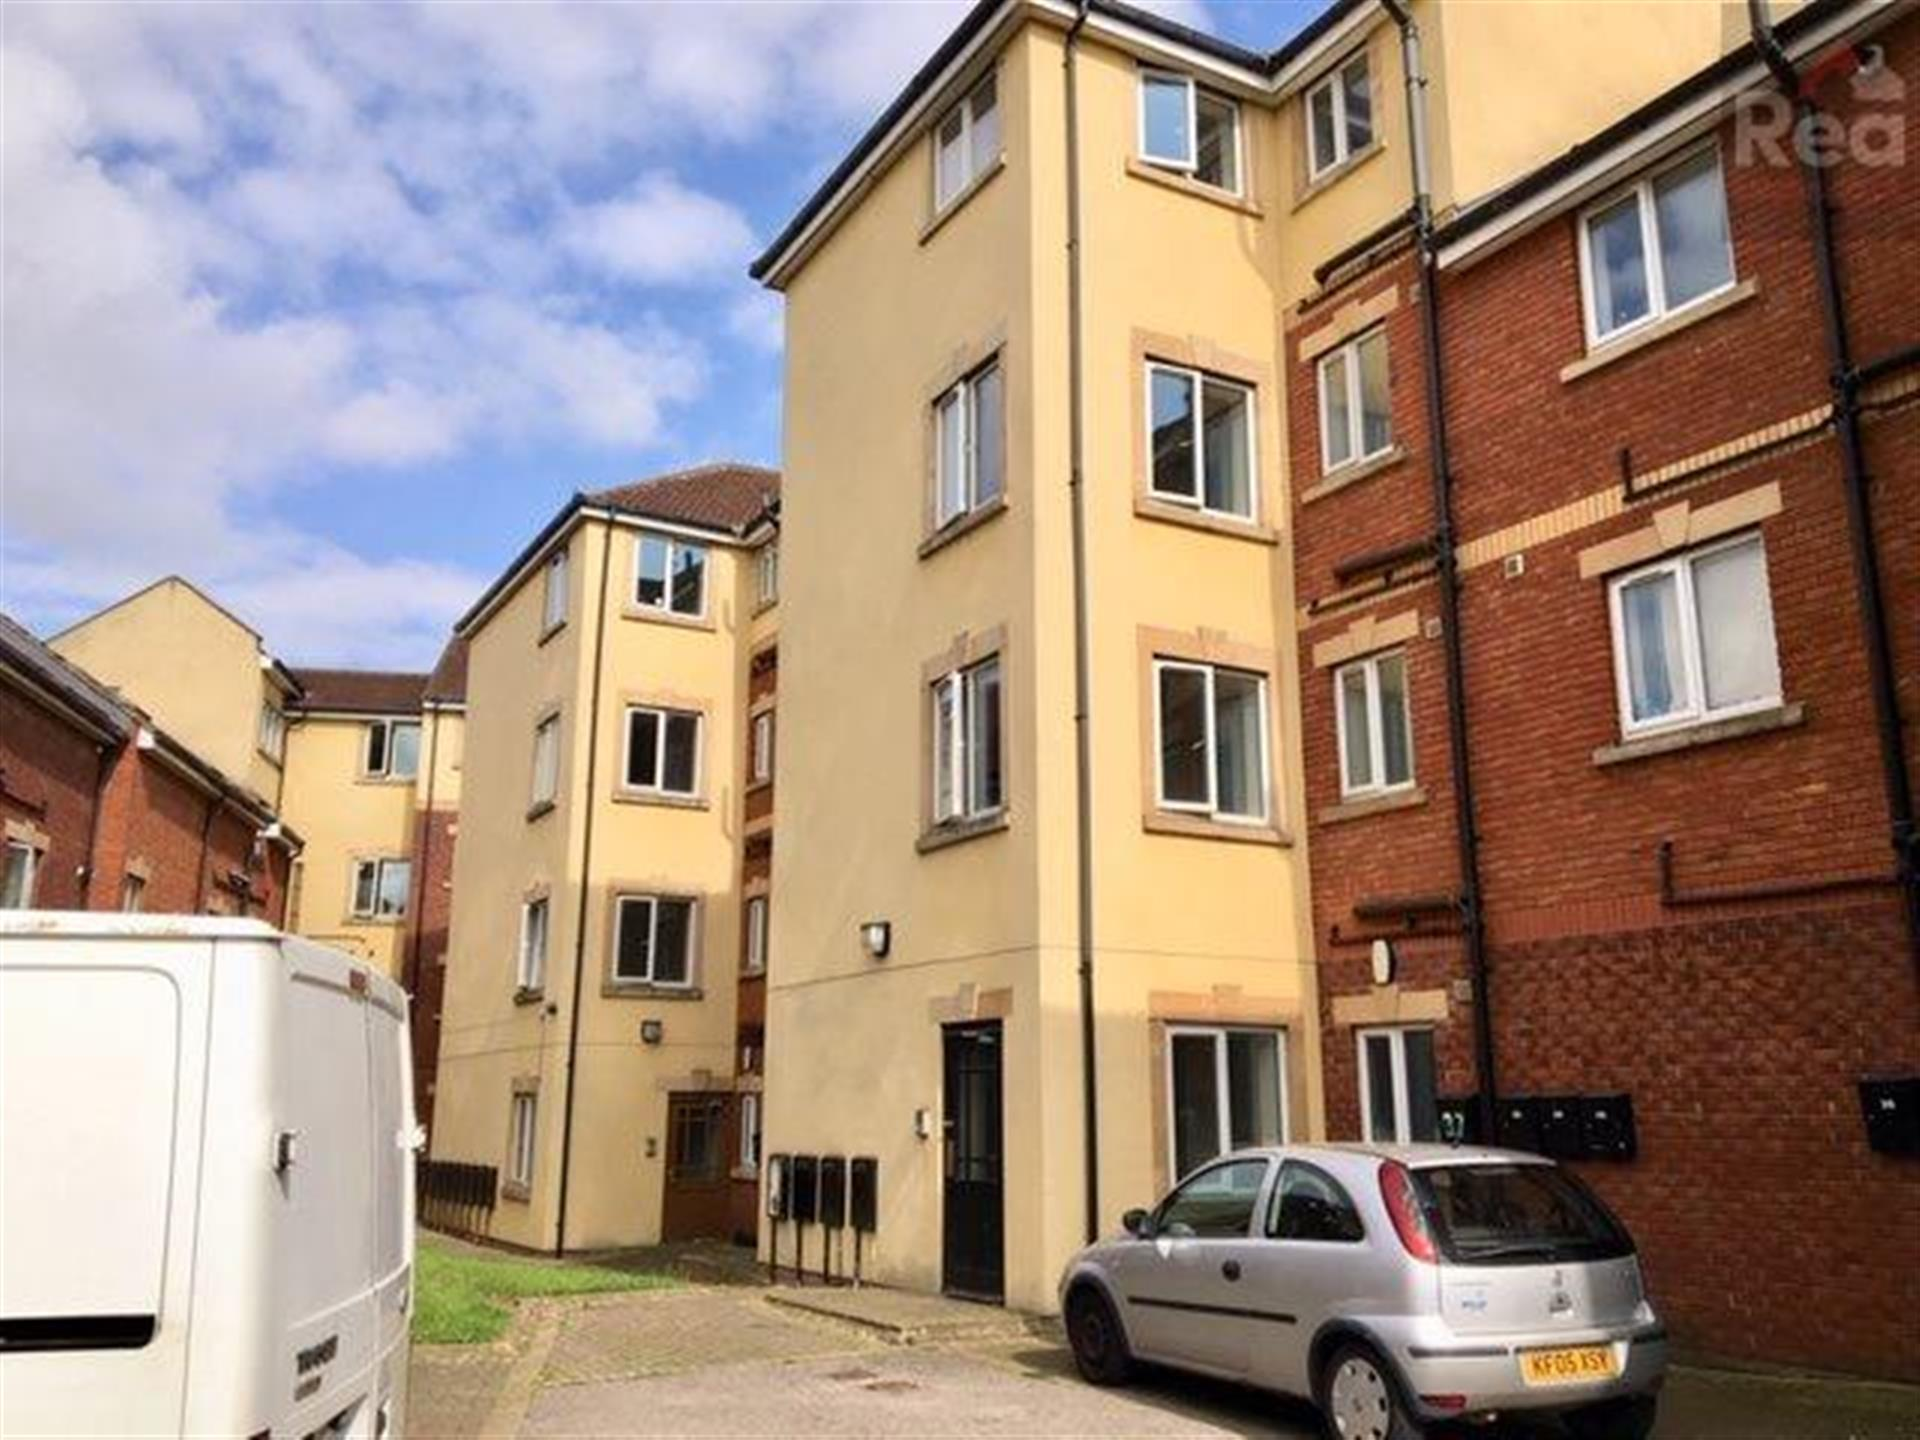 2 bedroom flat flat / apartment To Let in Tindale Crescent - Main Image.